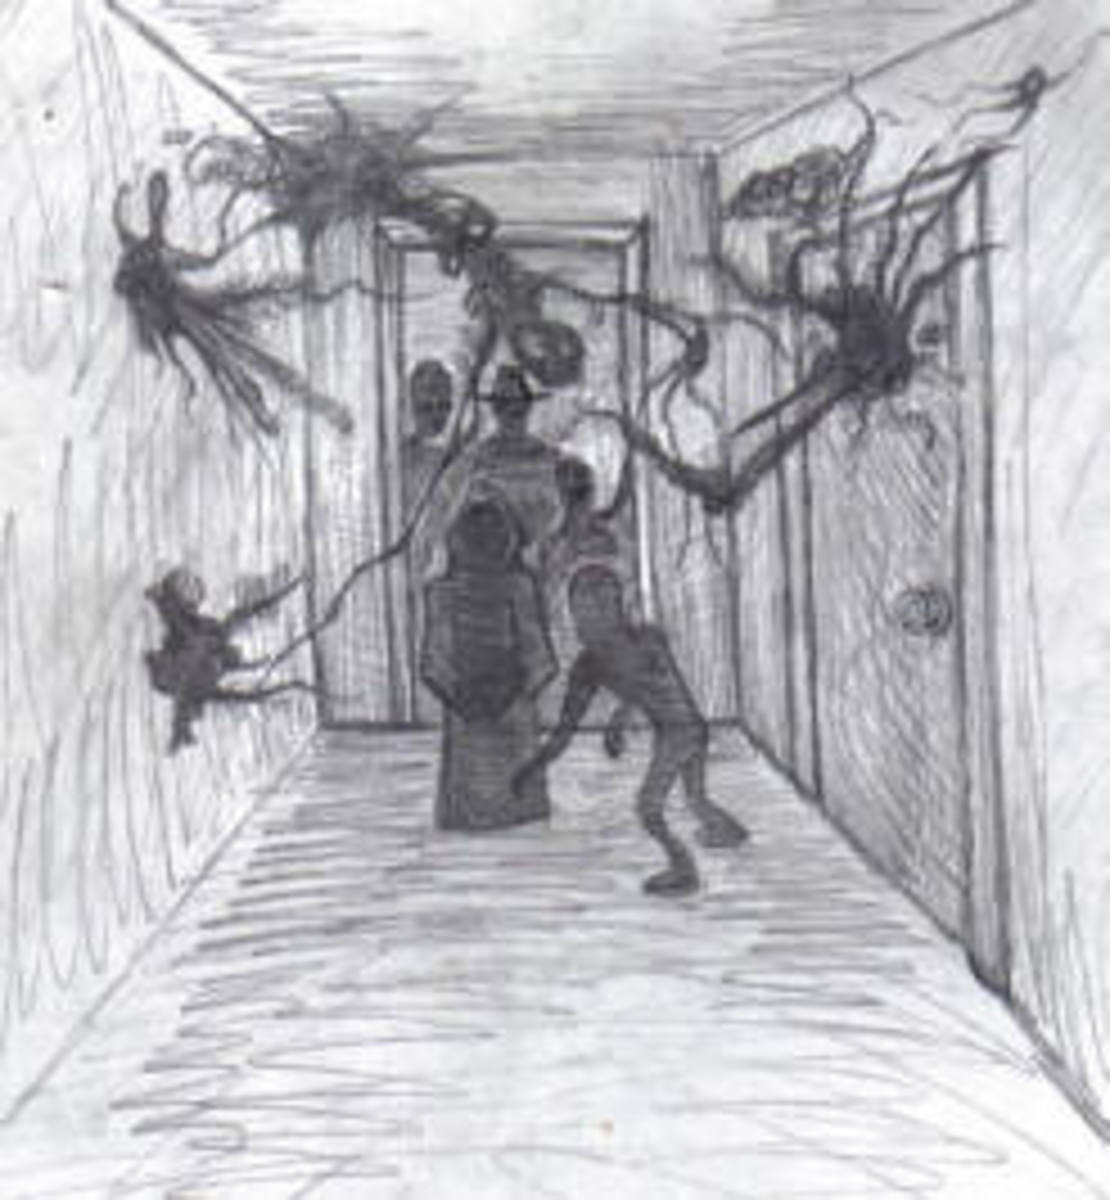 Have you ever saw a Shadow Person? What do you think Shadow People are?